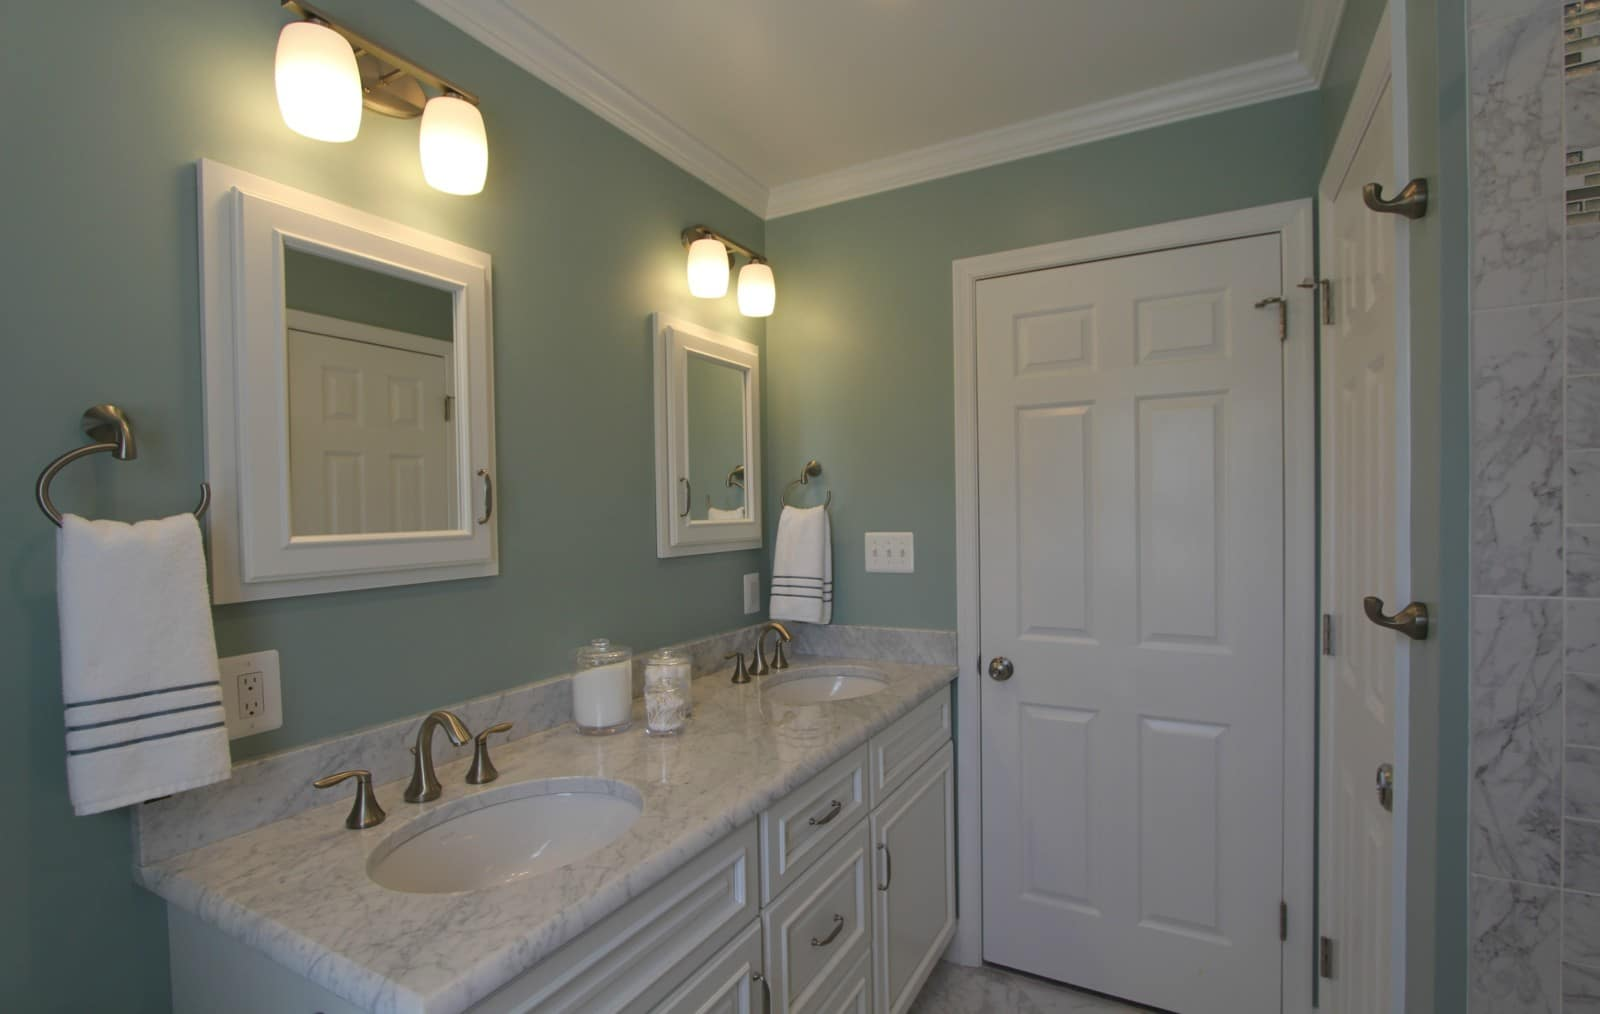 Bathroom Remodeling Sage Green Carrera Marble Taylor Made